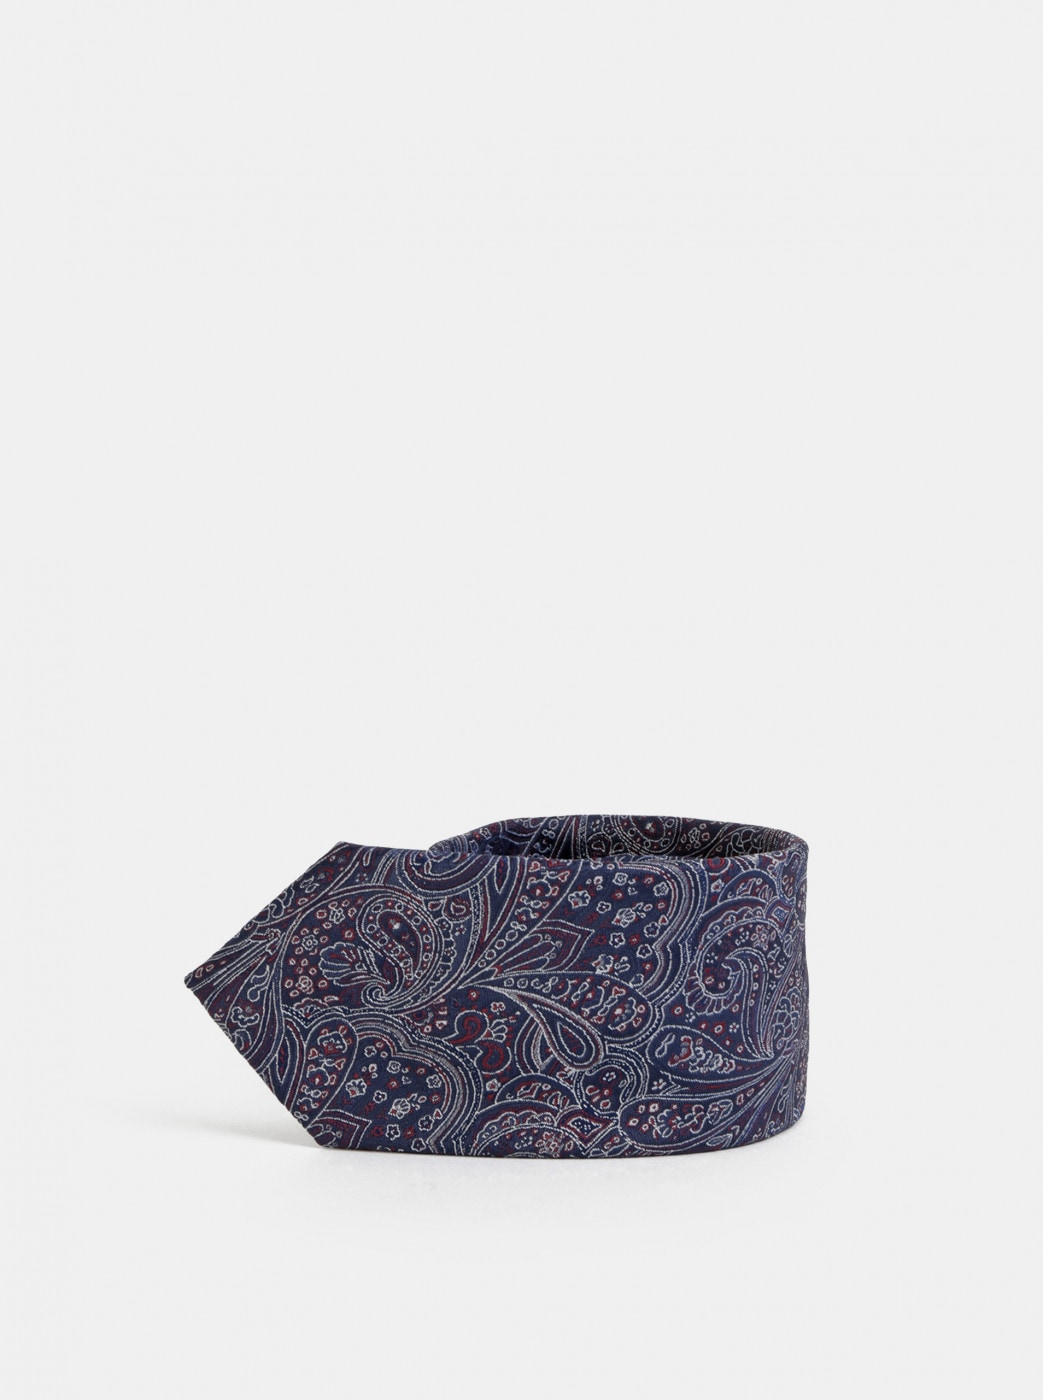 Dark Blue Patterned Tie Selected By Homme Martin